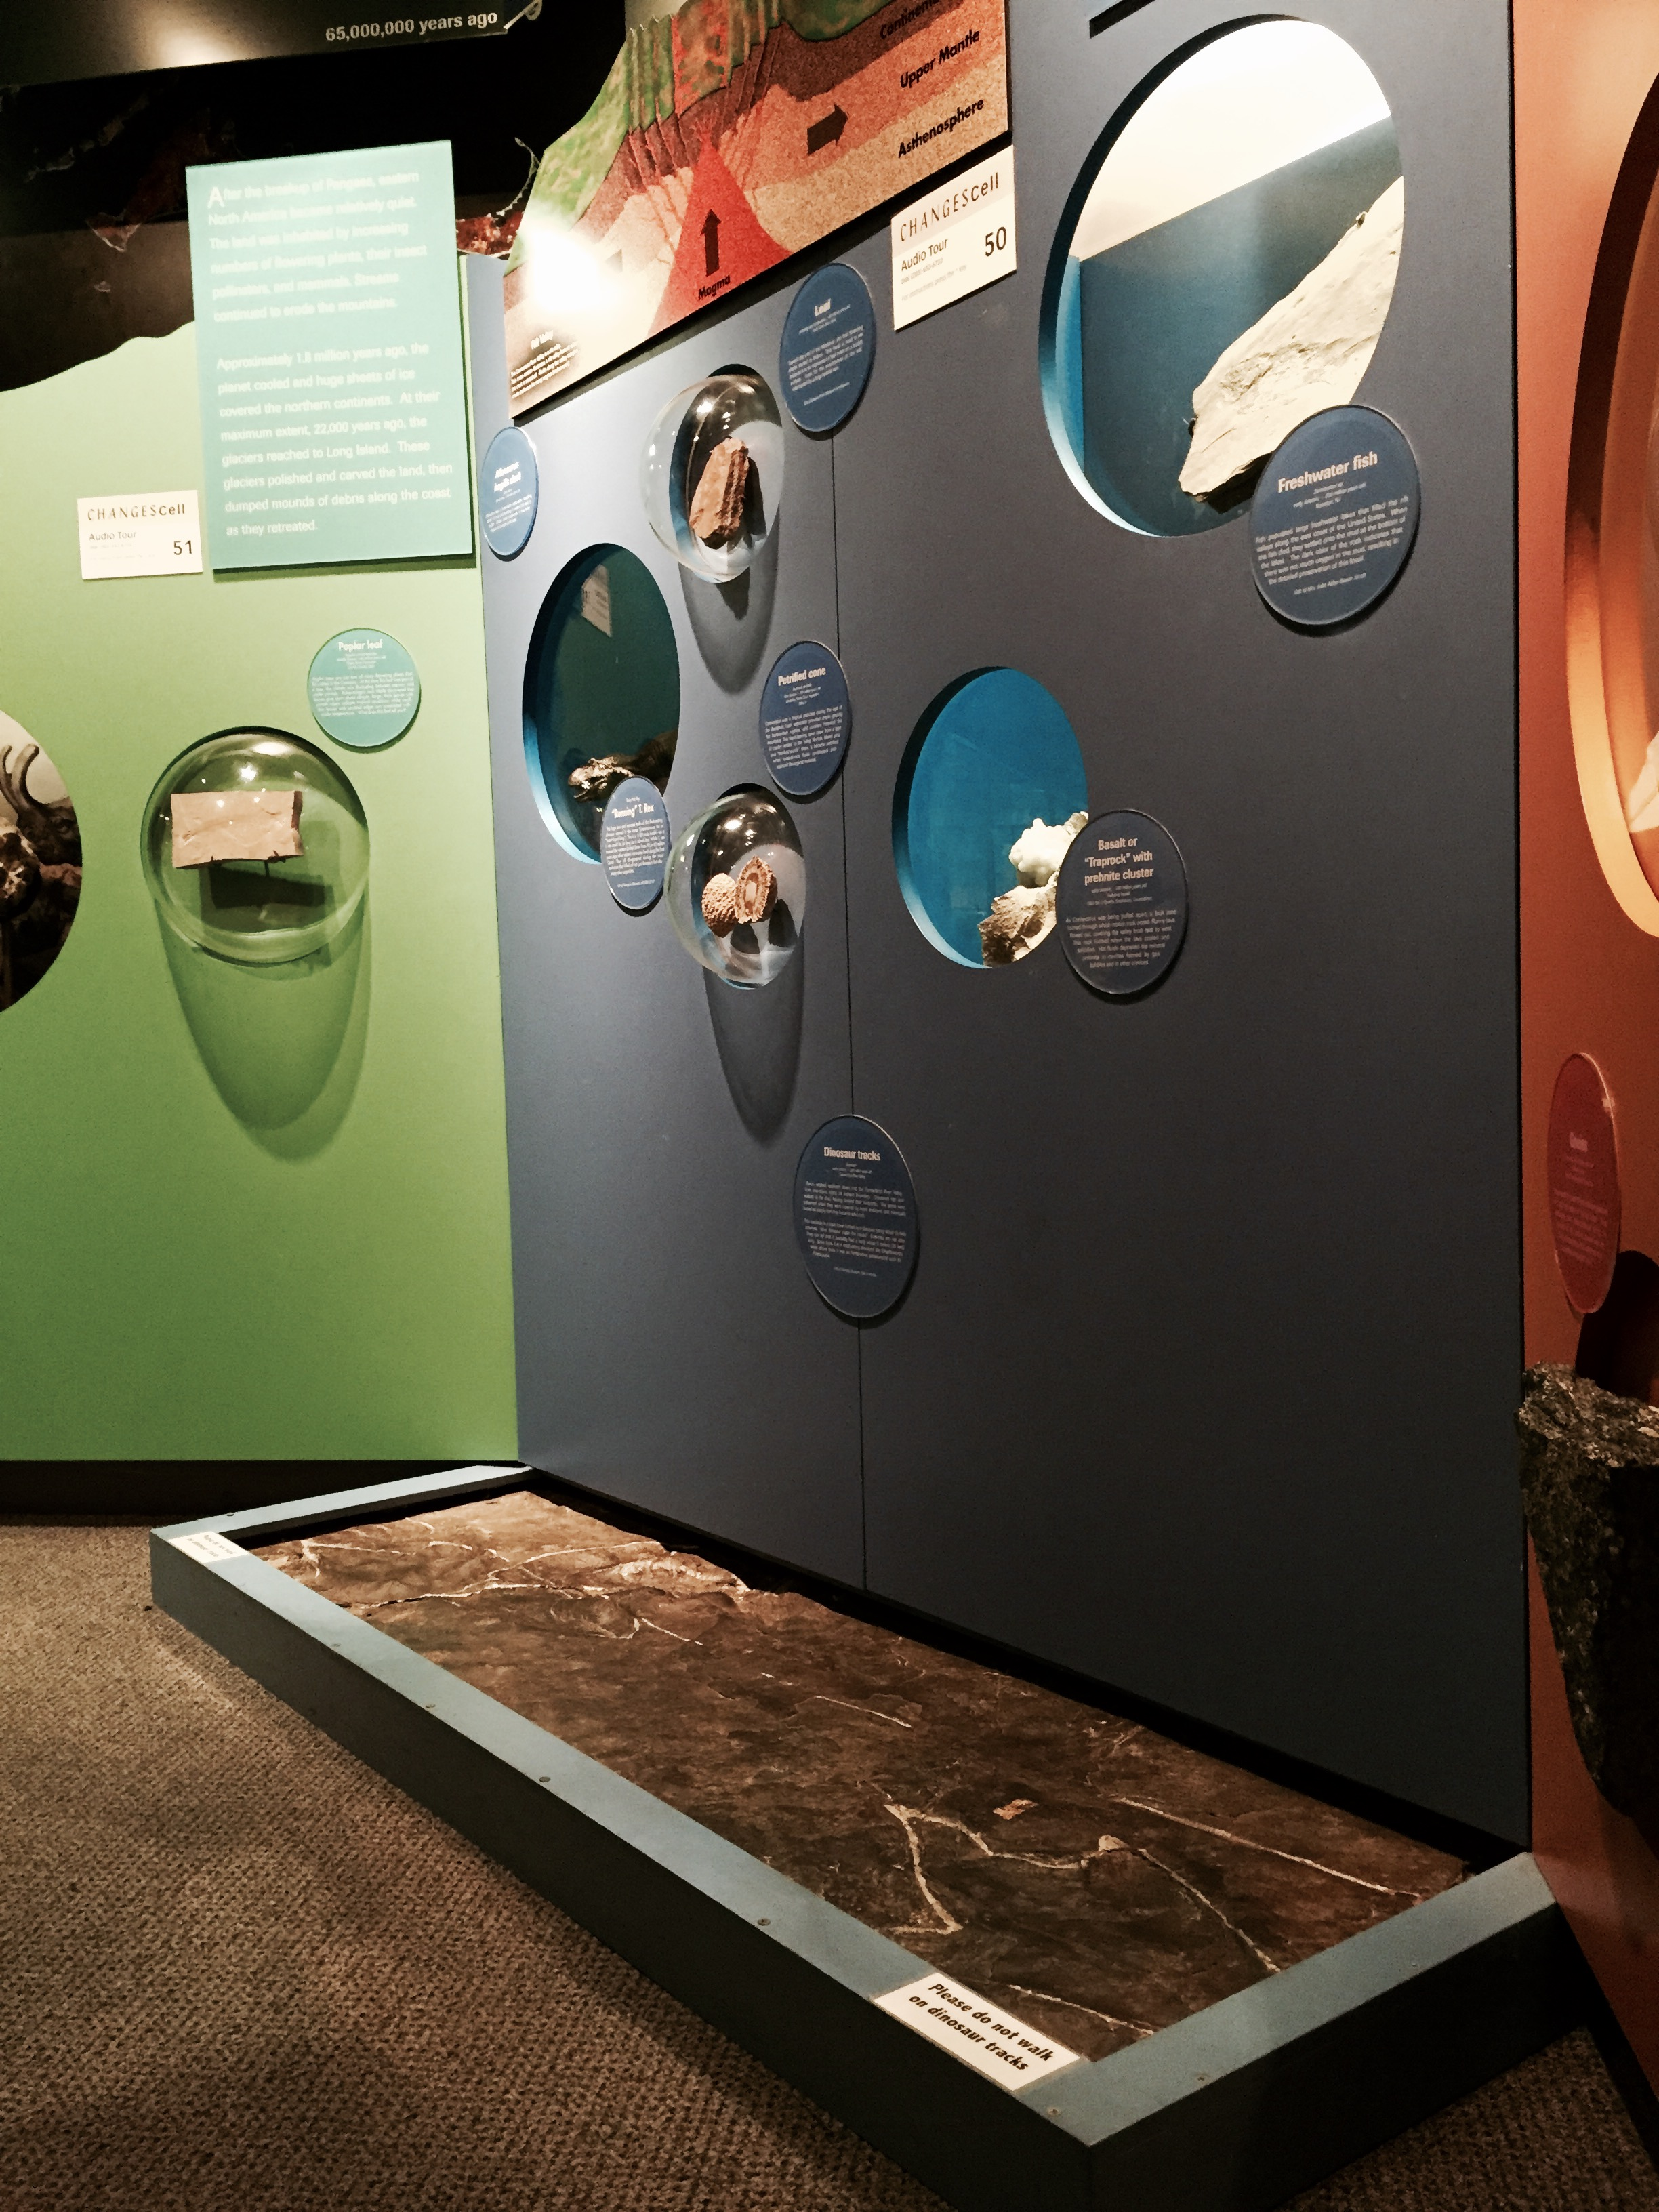 Triassic dinosaur footprints in the Changes in our Land gallery.